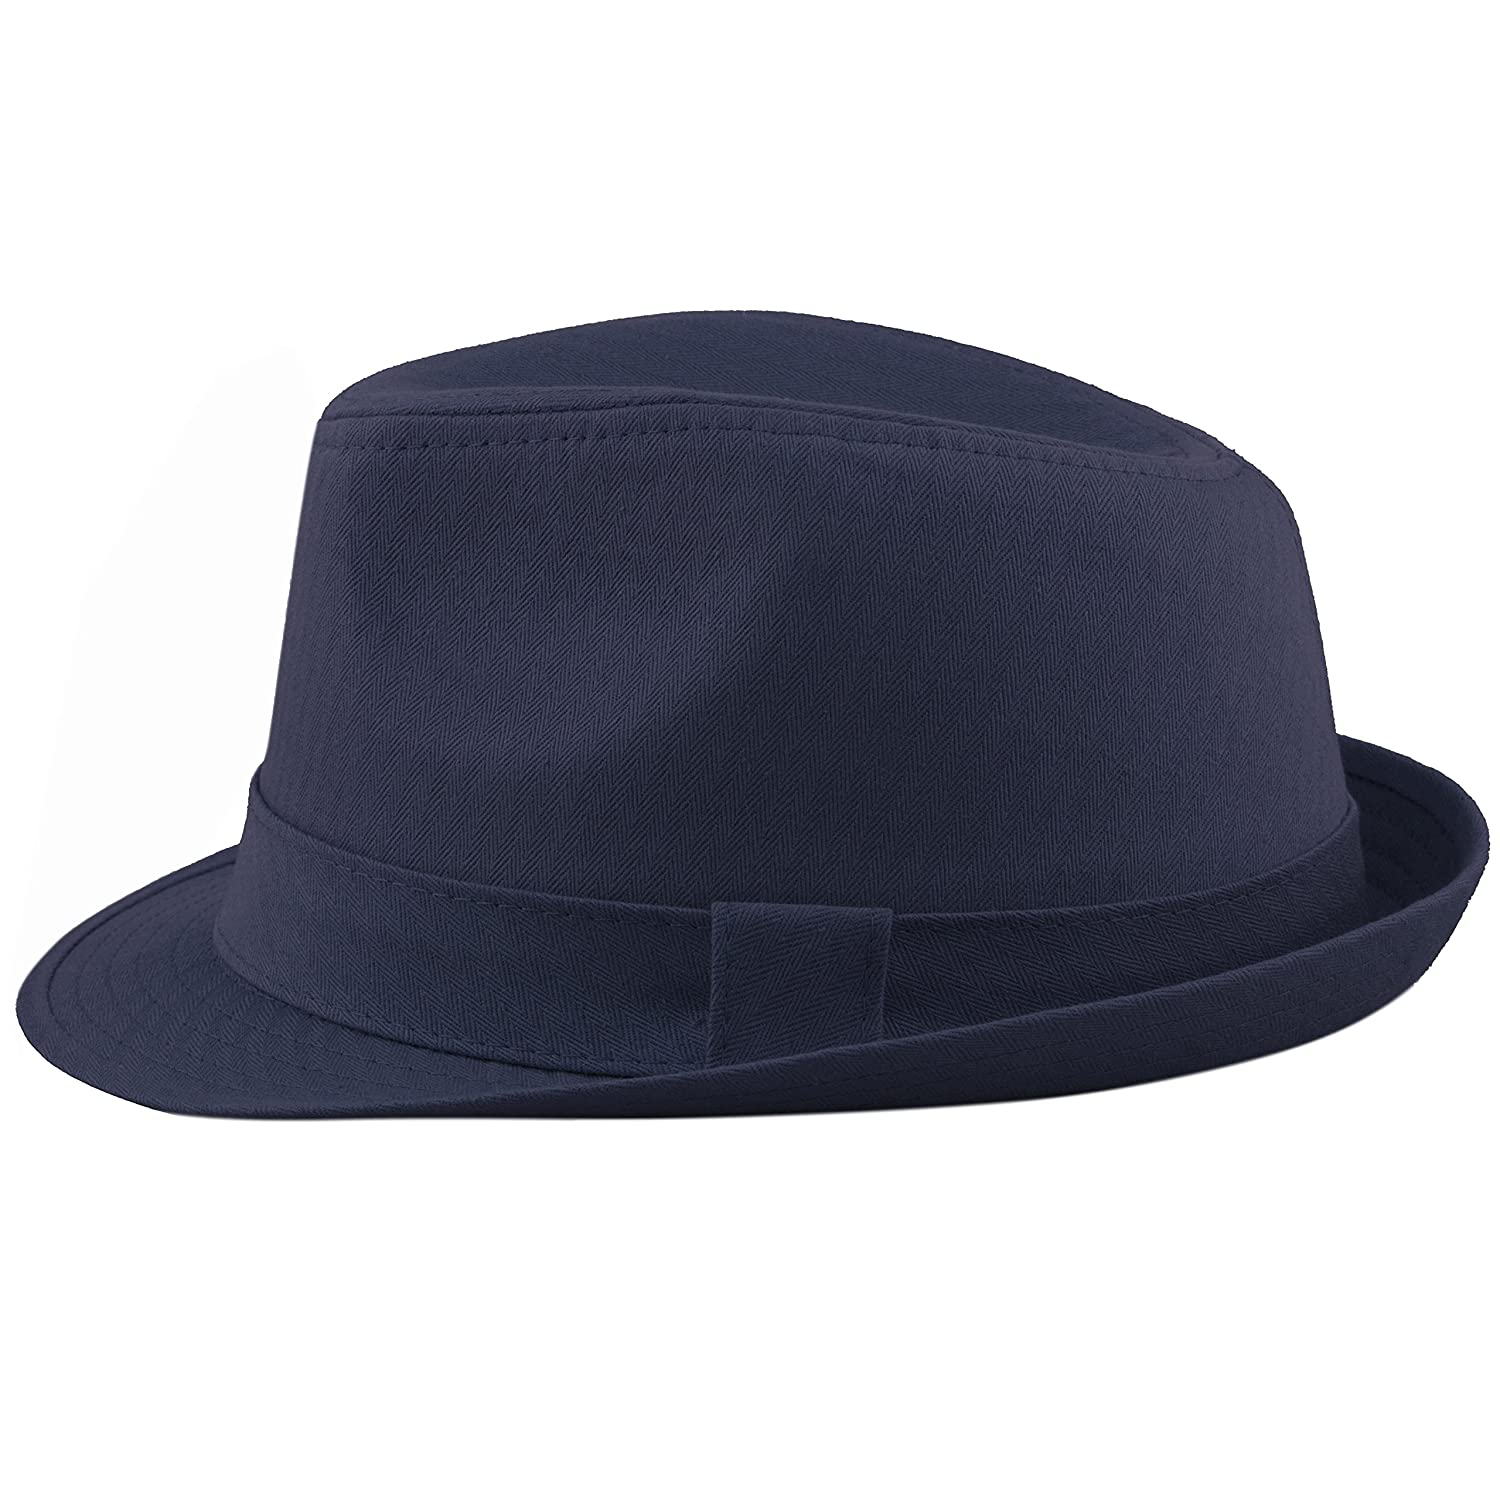 7317dba7f7d36 THE HAT DEPOT Unisex Cotton Twill Herringbone Fedora Hat at Amazon Men s  Clothing store